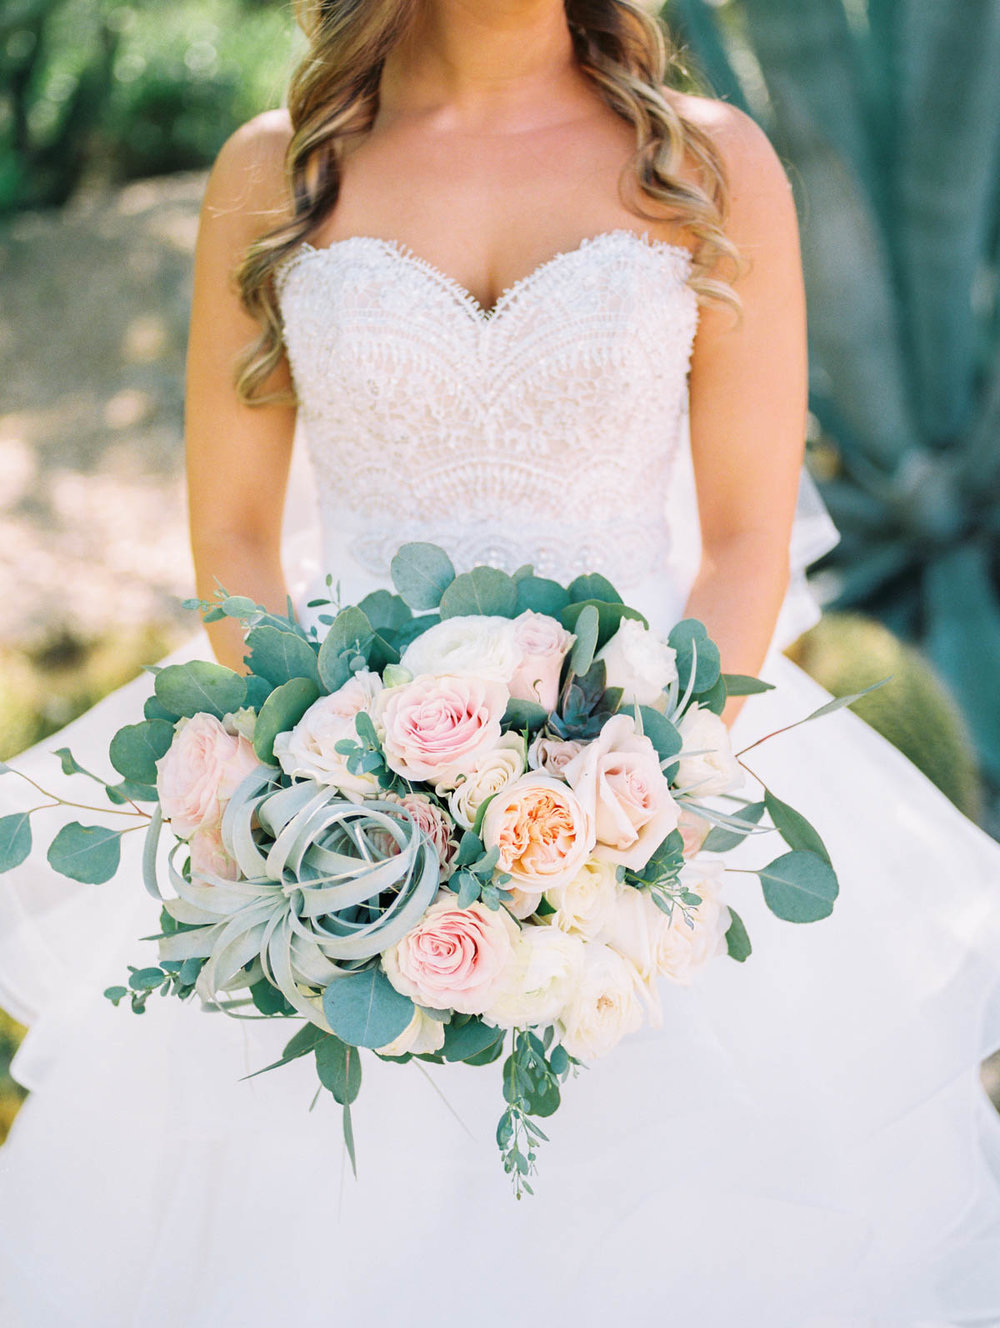 Another shot of this incredible bouquet by Alexis Grace florals. Isn't she amazing? captured by Tucson Wedding Photographers Betsy & John